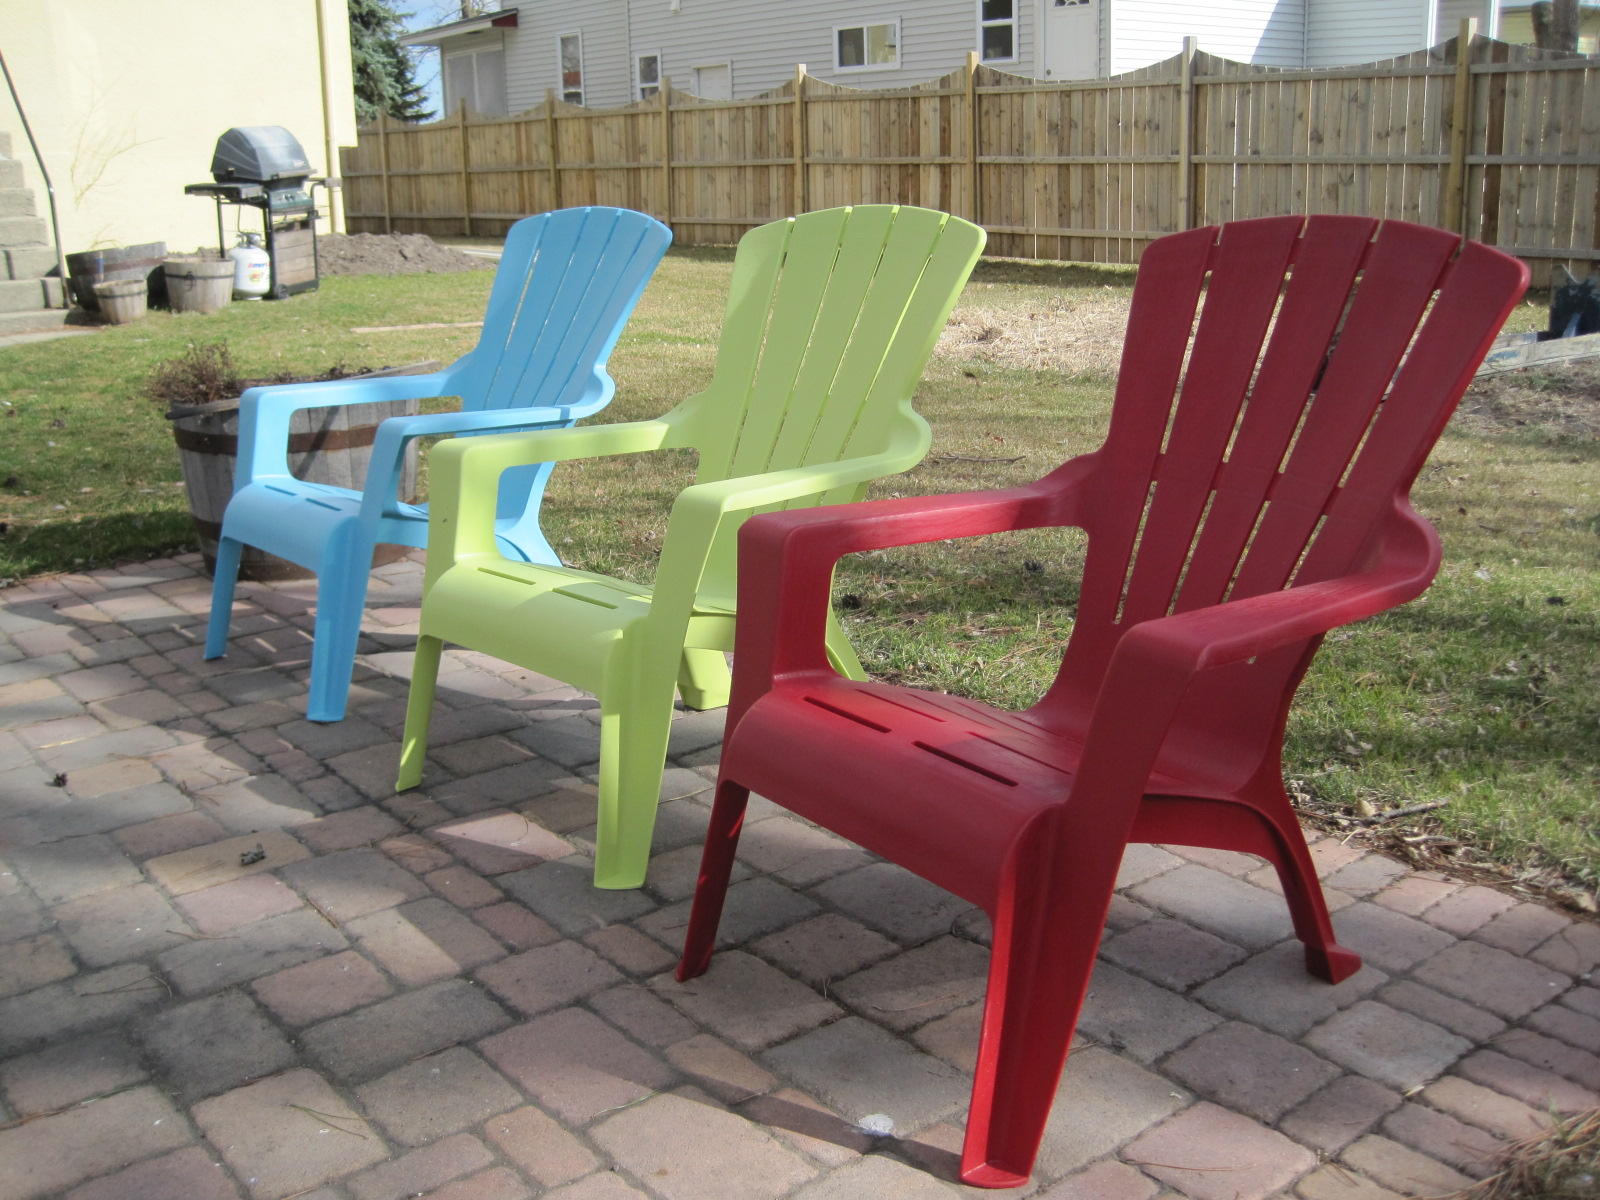 Target Stacking Chairs ... Chairs Home Depot Searches related to home depot adirondack chairs